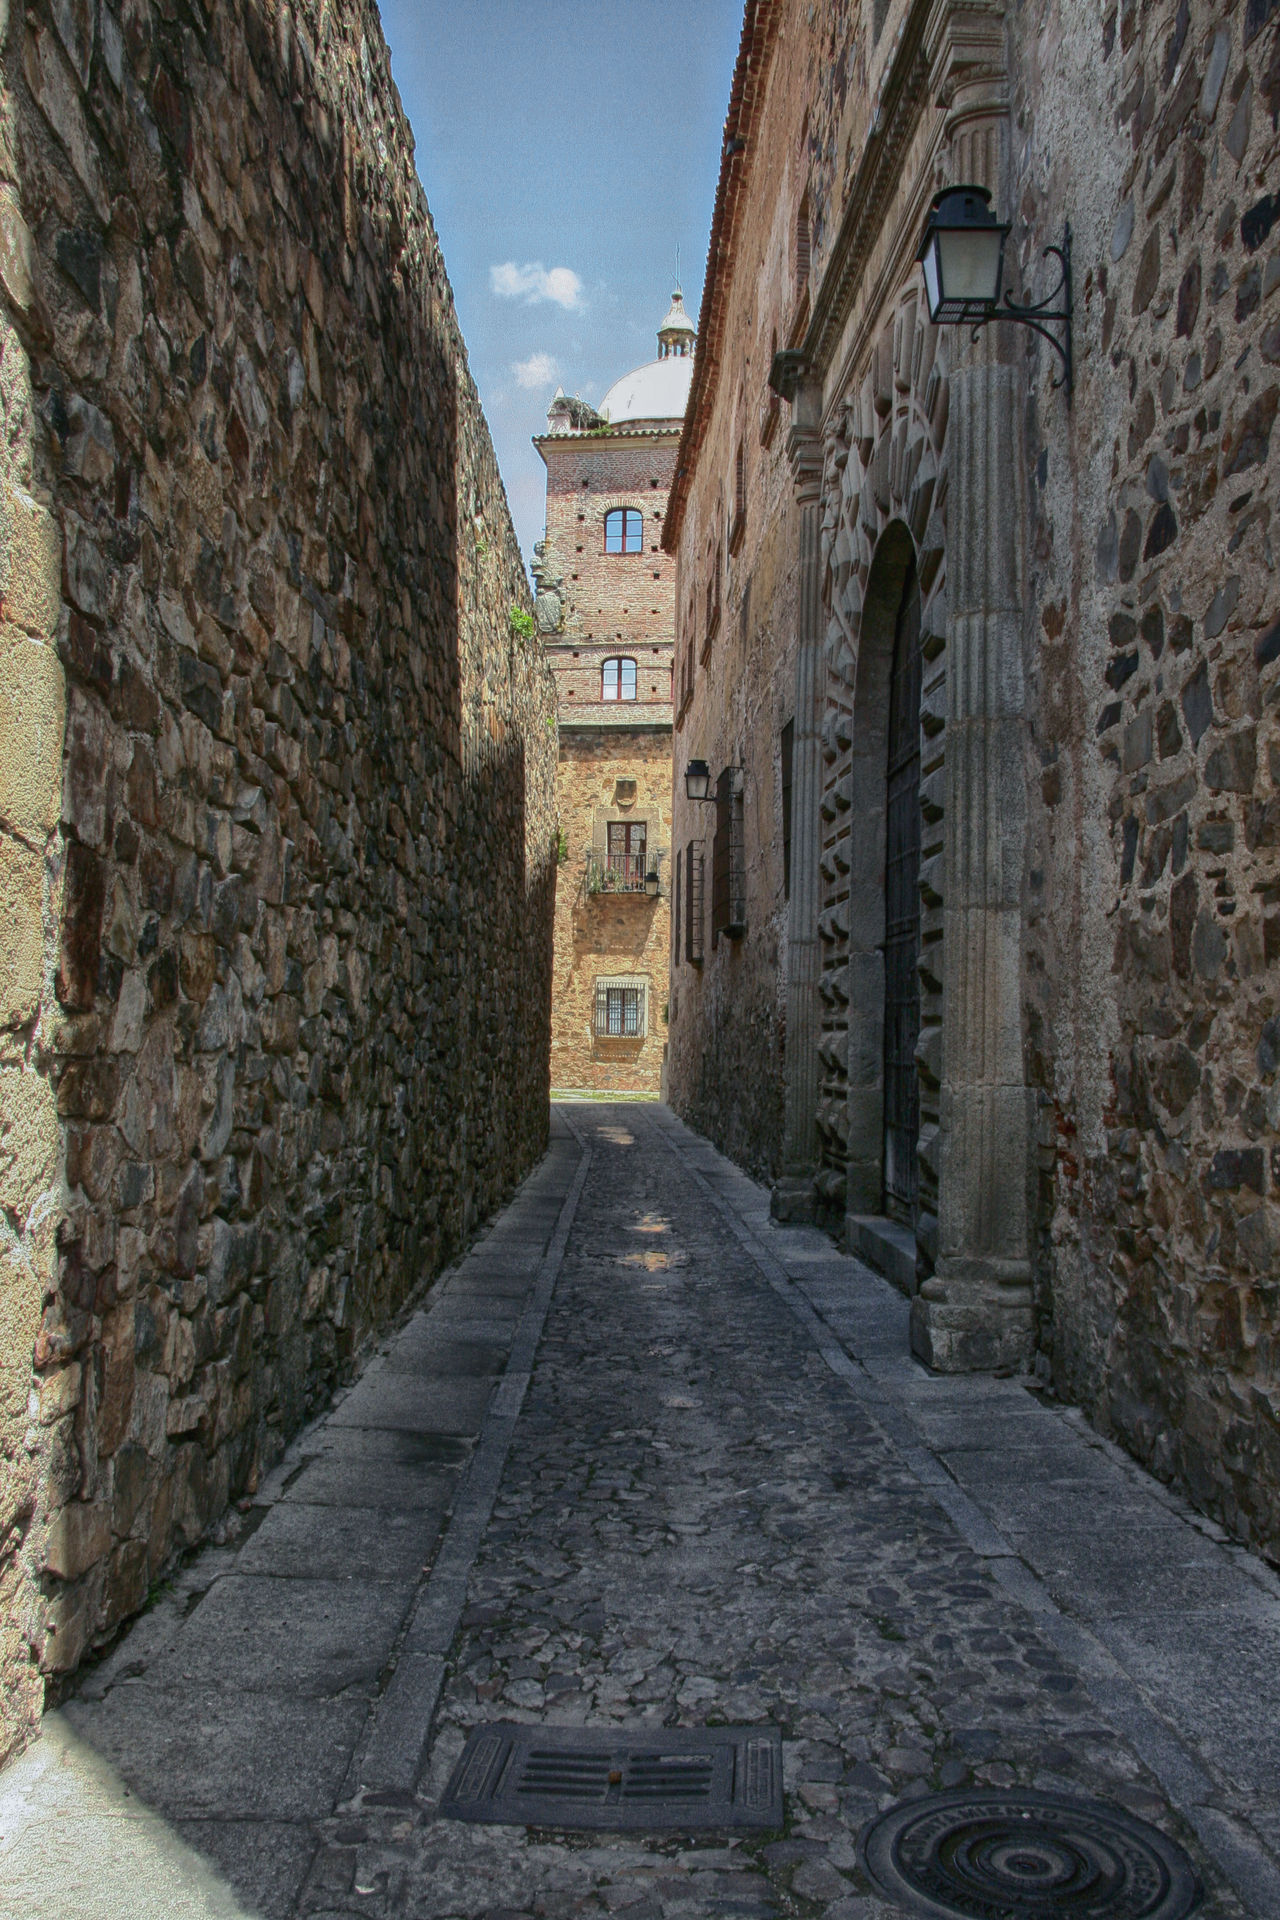 empty; nobody; antique; architecture; building; caceres; center; city; extremadura; heritage; historic; landmark; medieval; outdoor; patrimony; quarter; spain; stone; street; touristic; travel; urban Architecture Building Exterior Built Structure Day No People Outdoors Sky The Way Forward